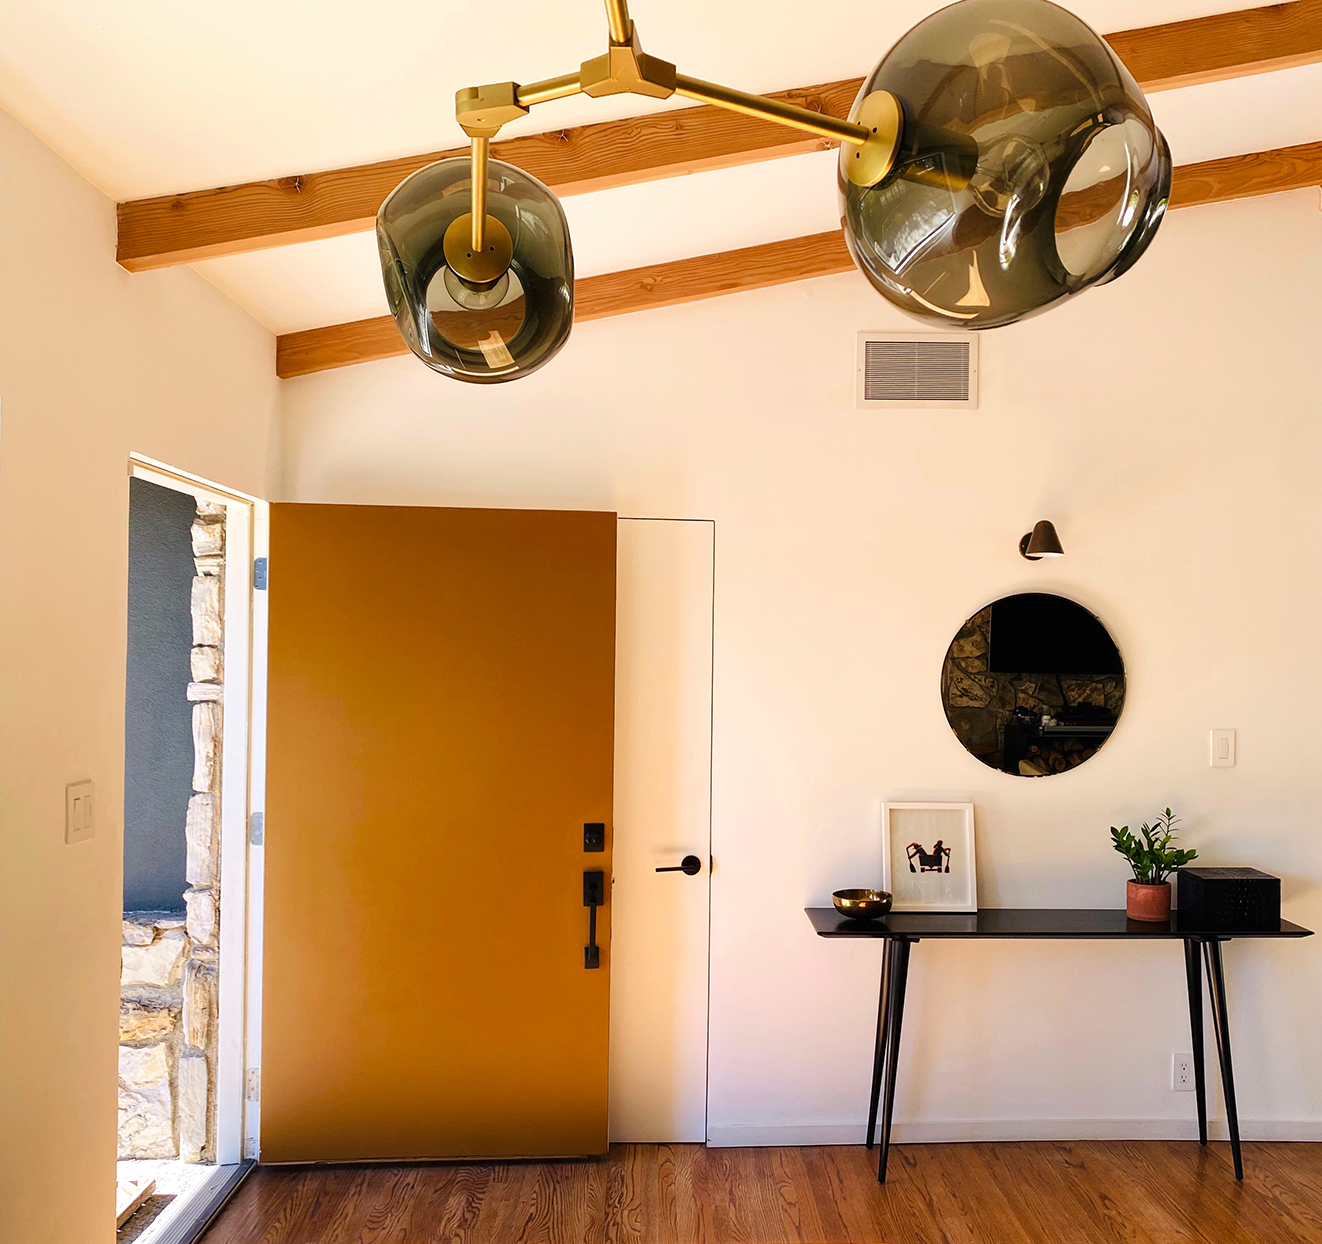 open mustard colored front door into modern house